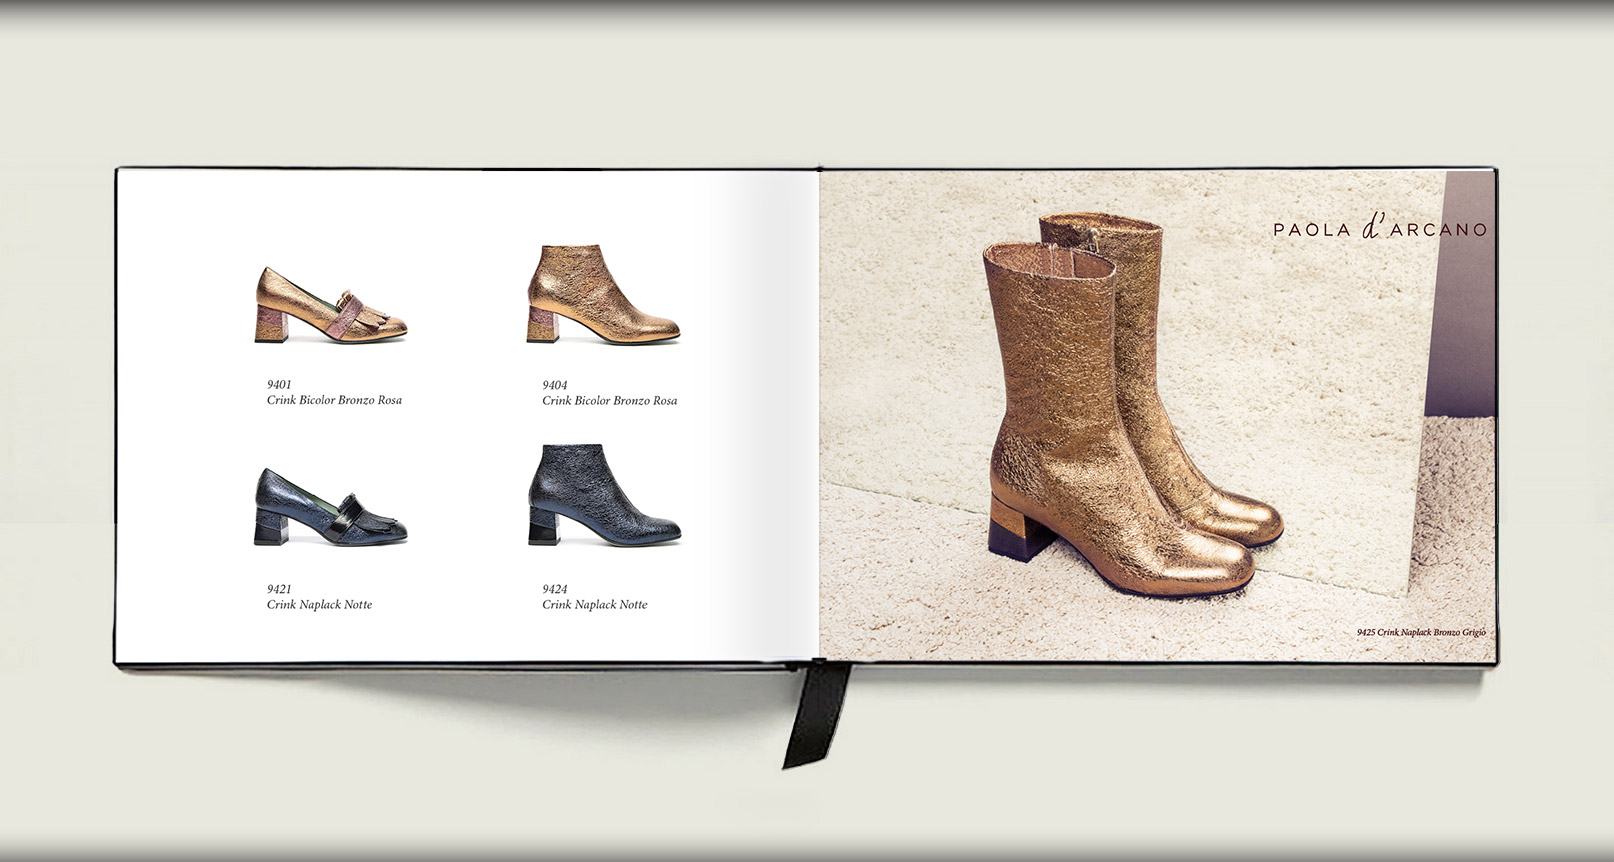 Advertising Paola D'Arcano Shoes Made in Italy - 3